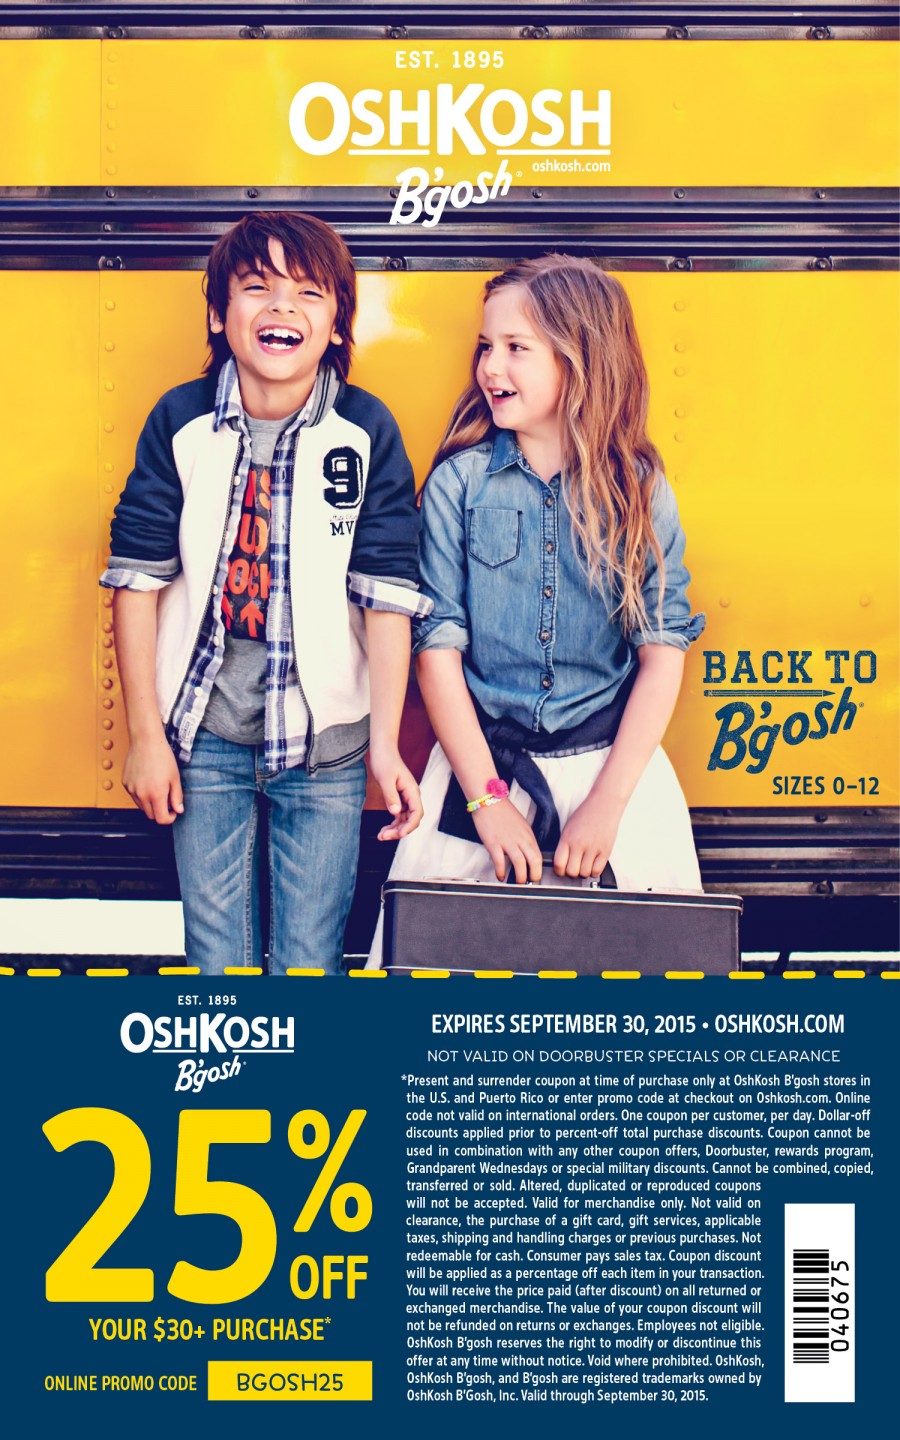 photograph about Osh Coupons Printable known as Osh kosh 25 off coupon printable : Disney printable coupon codes